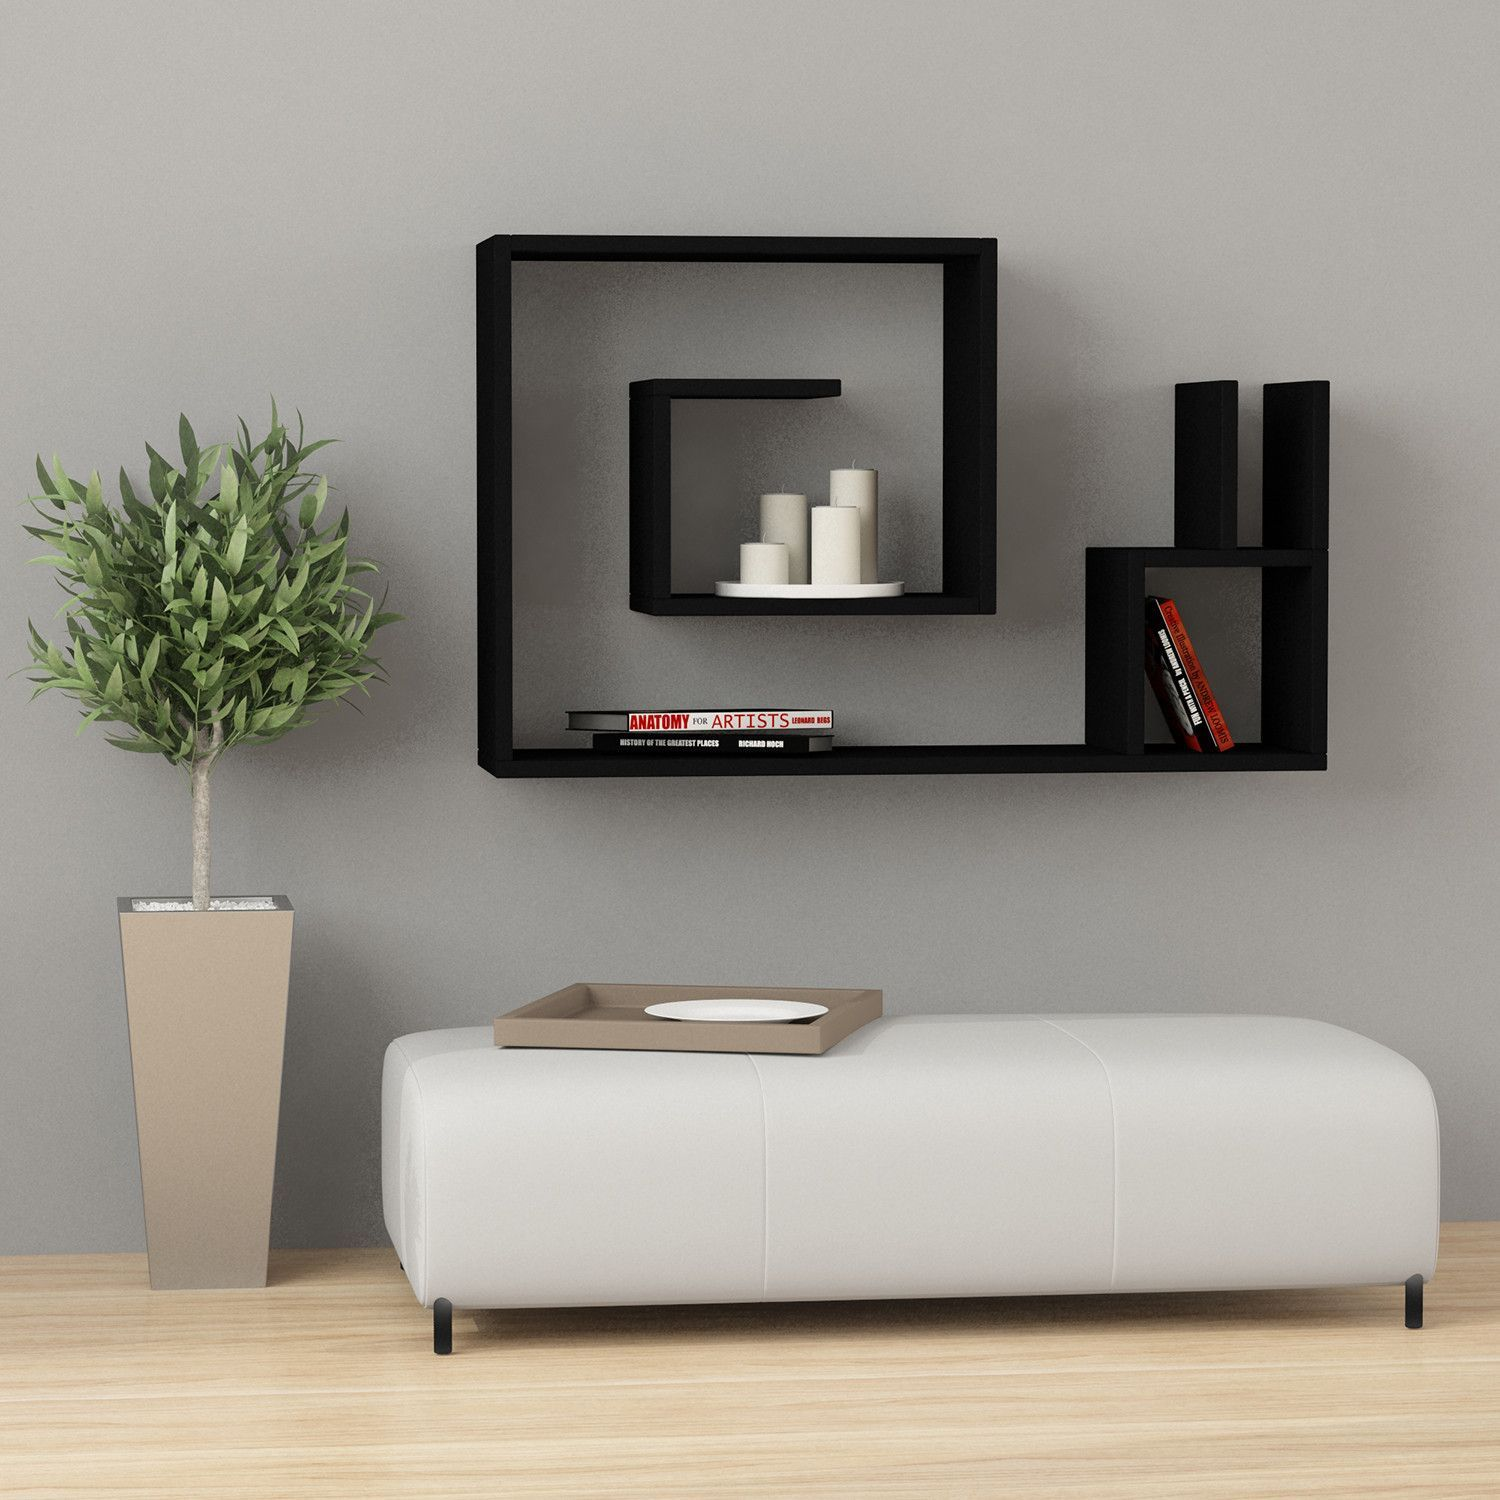 innovative space saving furniture. This Simple And Popular Modern Style Wall Shelf Has An Innovative Space- Saving Design While Being Both Decorative Functional. Space Furniture A